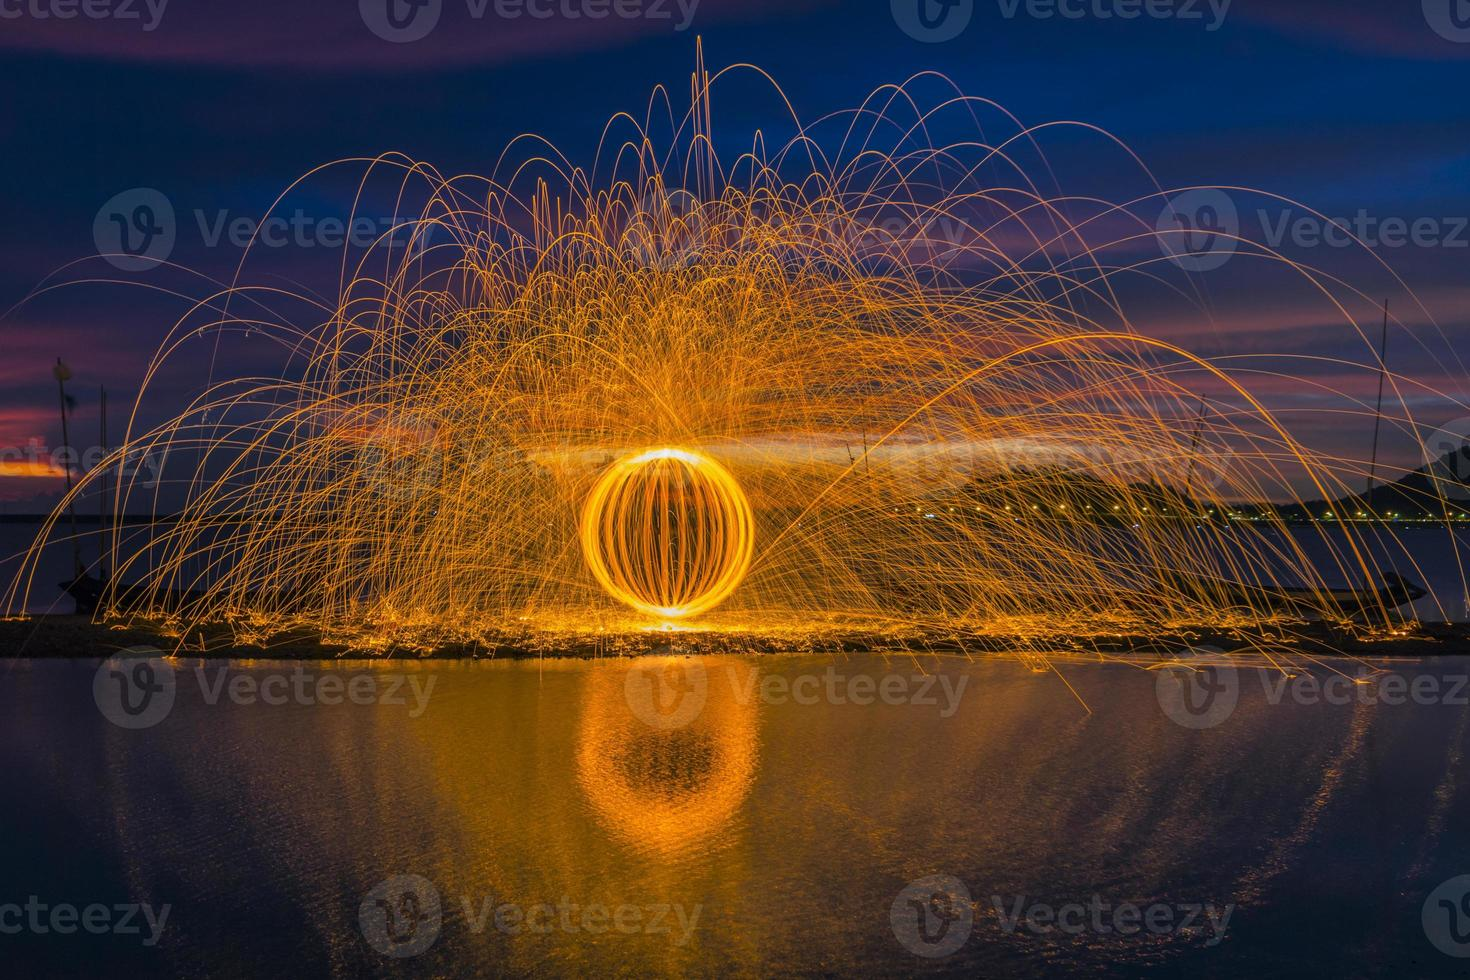 Firework showers of hot glowing sparks from spinning steel wool. photo